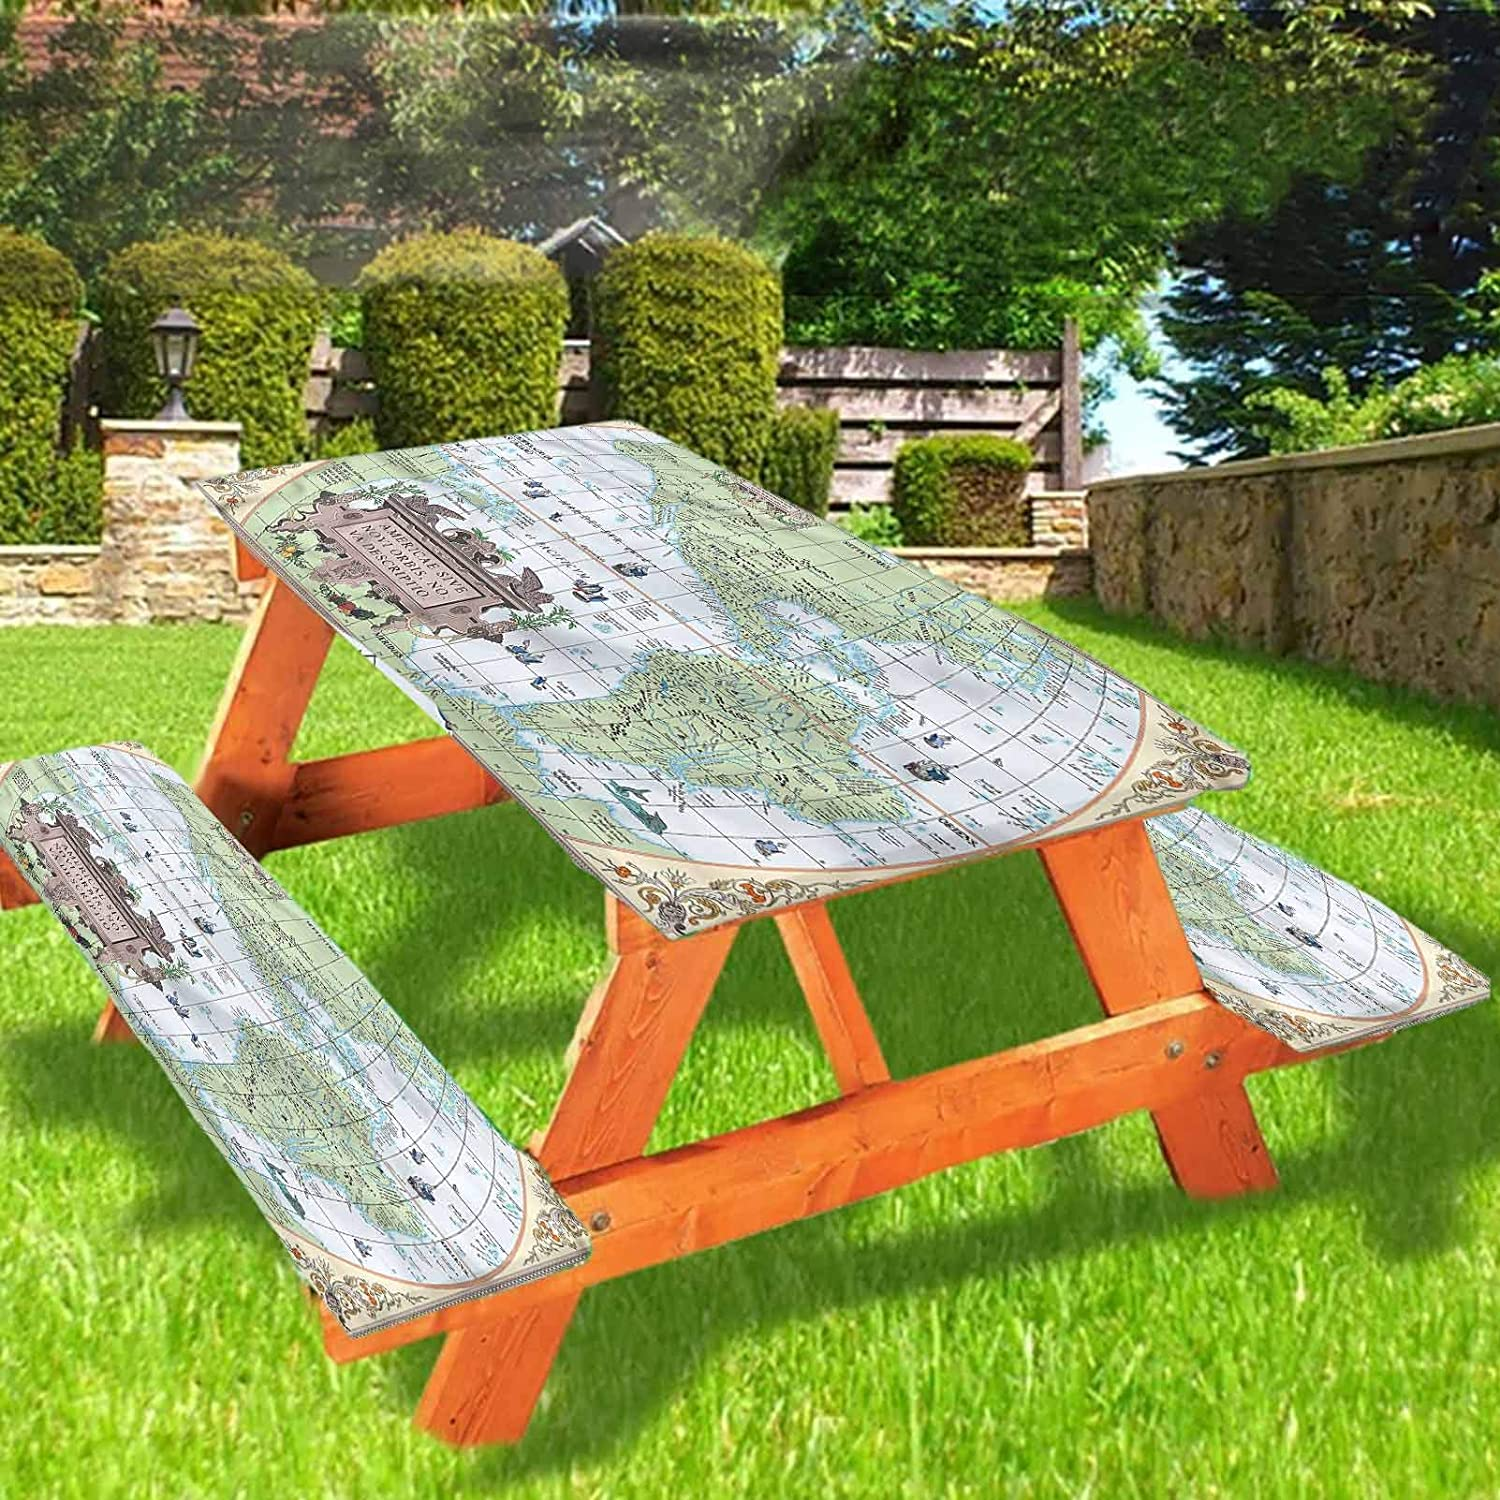 Lyzelre Modern Picnic Table and Bench Fitted Tablecloth Cover,Vintage America Continents Elastic Edge Fitted Tablecloth,28 x 72 Inch, 3-Piece Set for Camping, Dining, Outdoor, Park, Patio